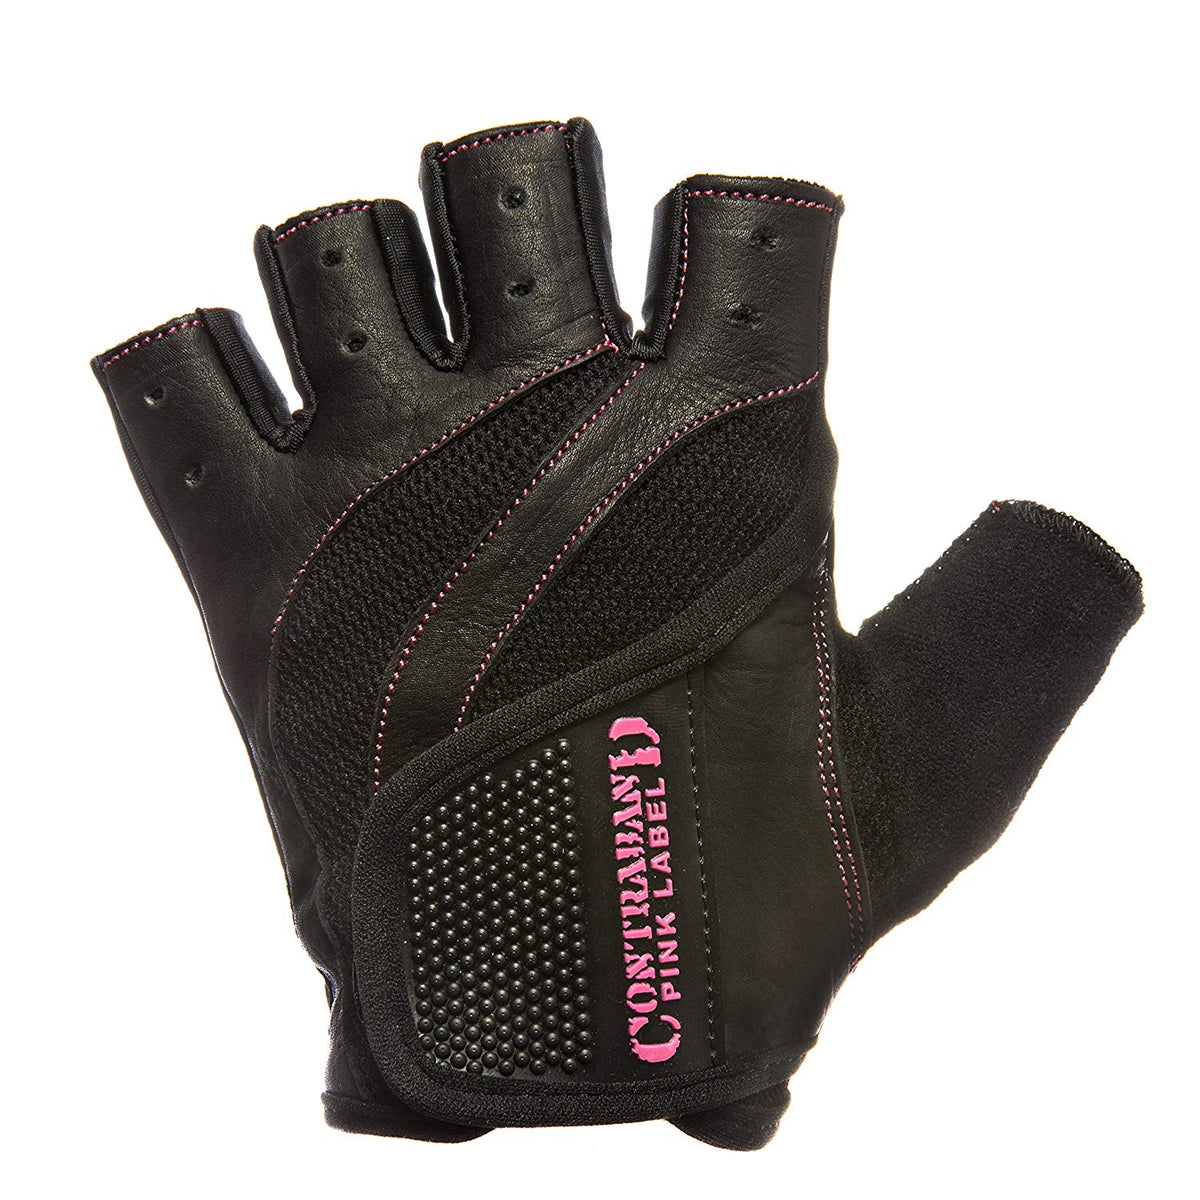 Contraband Pink Label 5437 Womens Extreme Grip Weight Lifting Gloves w/Heavy Rubber Padded Palm